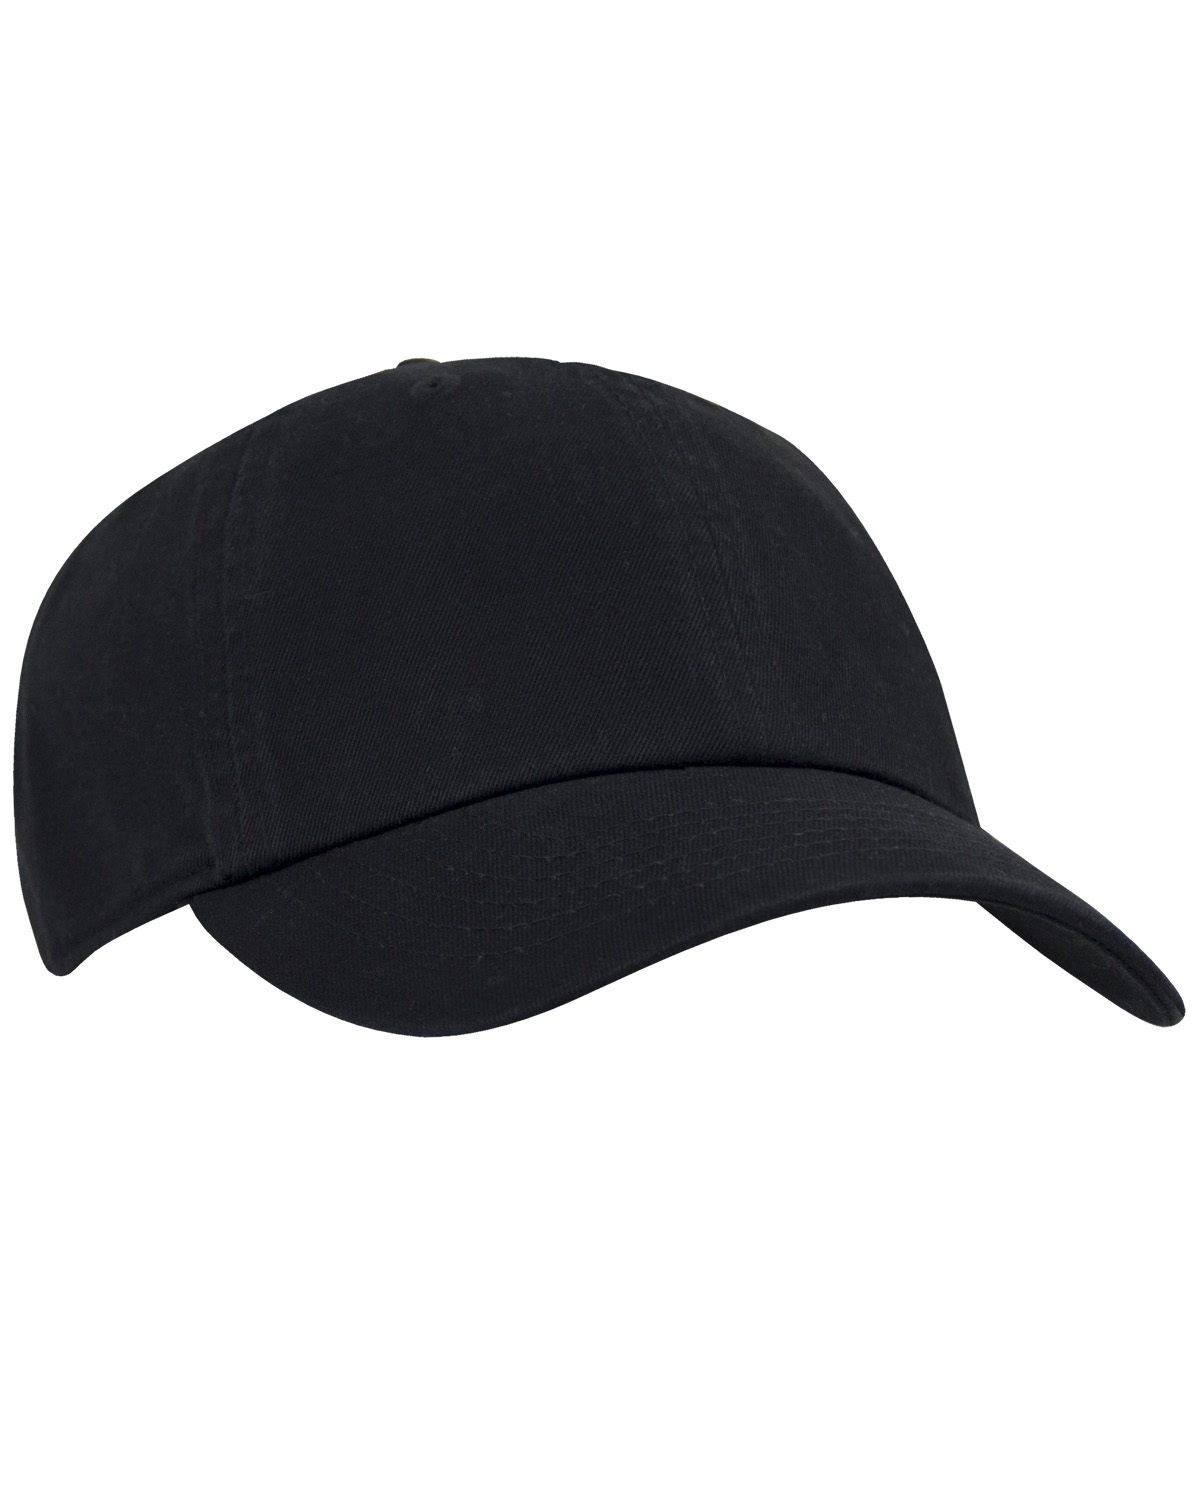 Champion CA2000 - Accessories Classic Washed Twill Cap